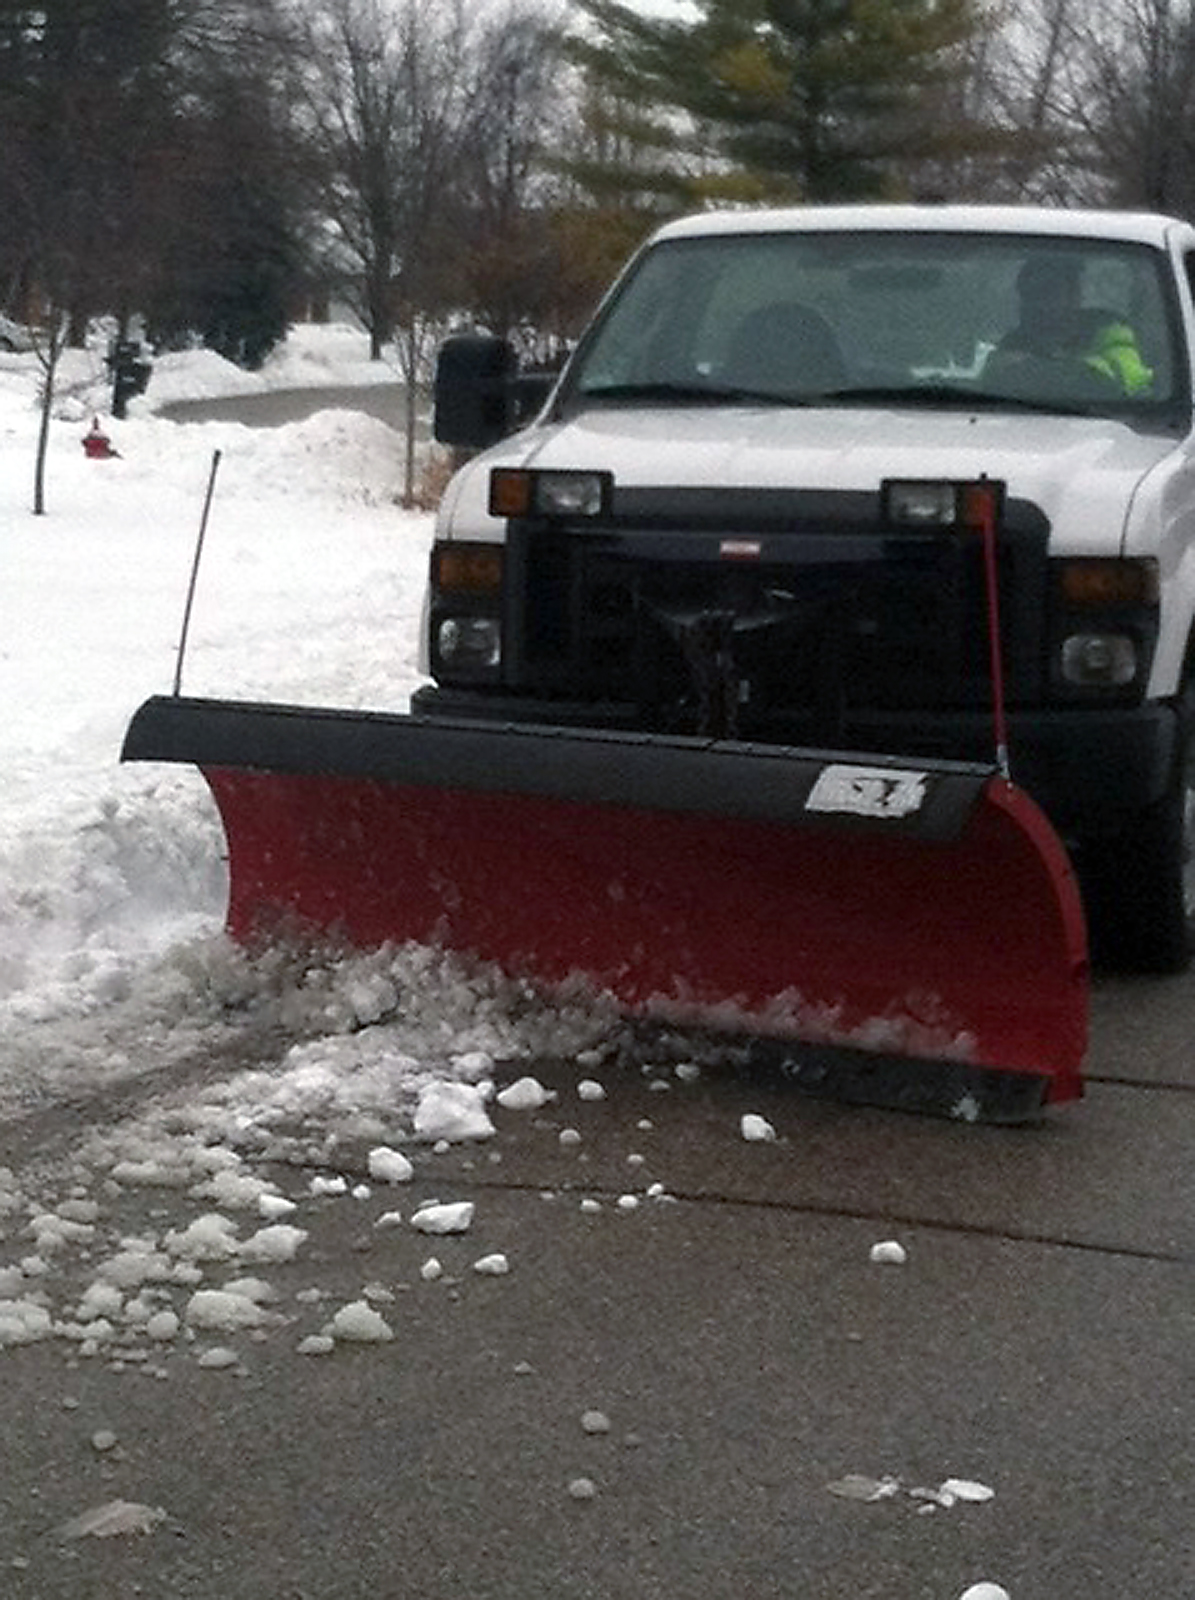 A Westfield plow clears a residential street. Plows went through neighborhoods three times to clear snow, ice and slush from the winter storm on Jan. 6 through 8. (Submitted photo)